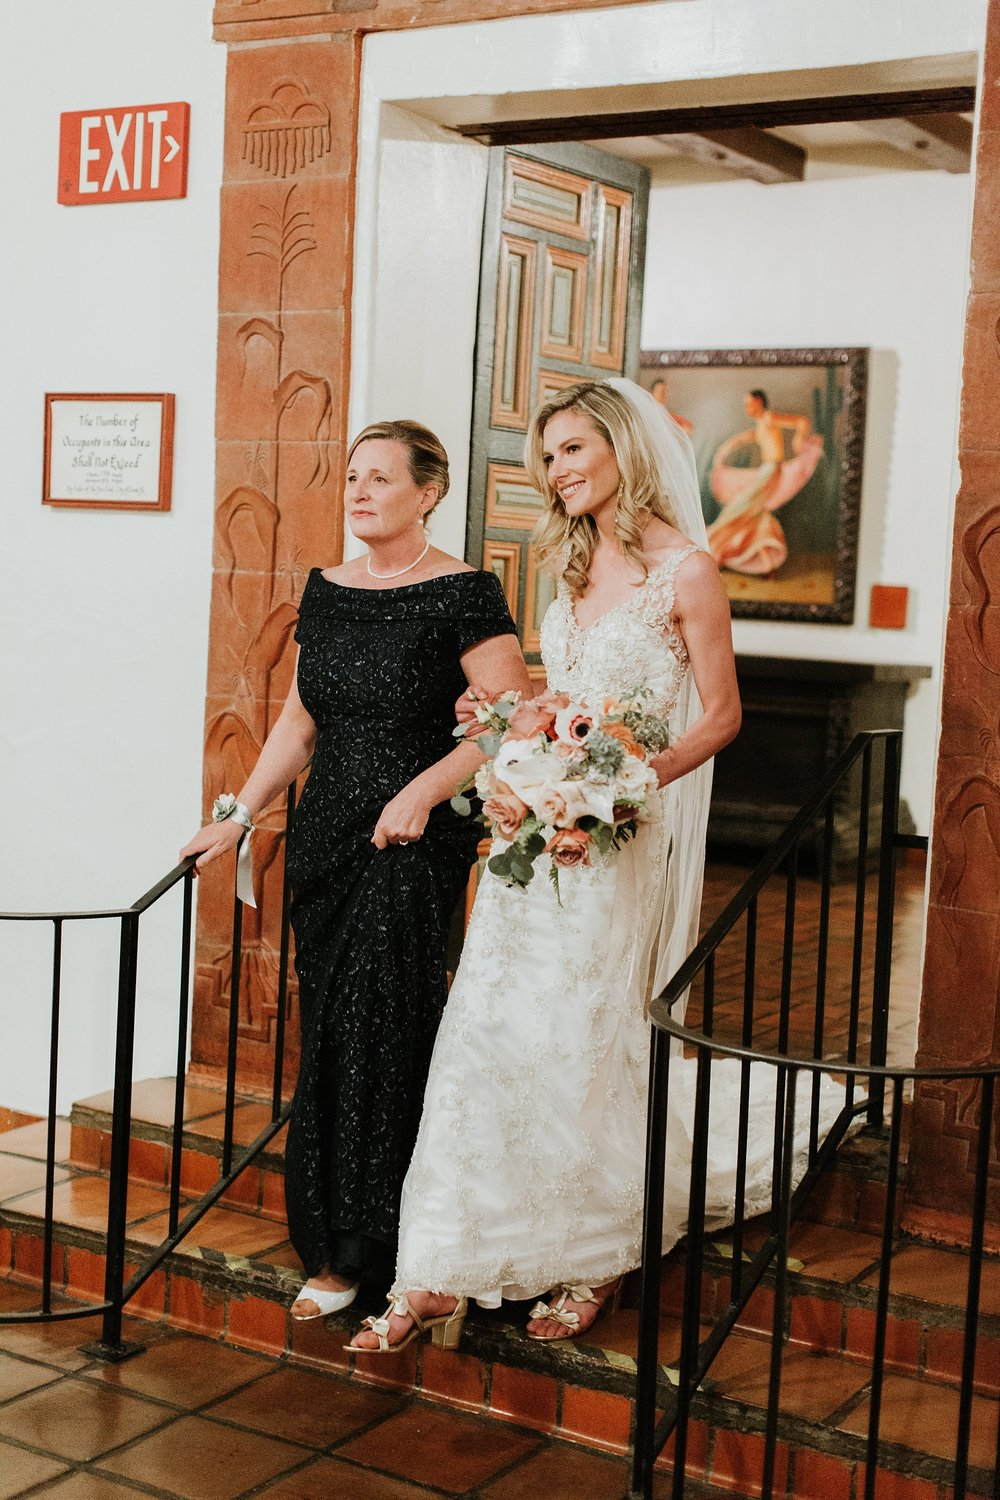 Alicia+lucia+photography+-+albuquerque+wedding+photographer+-+santa+fe+wedding+photography+-+new+mexico+wedding+photographer+-+la+fonda+wedding+-+la+fonda+winter+wedding_0075.jpg